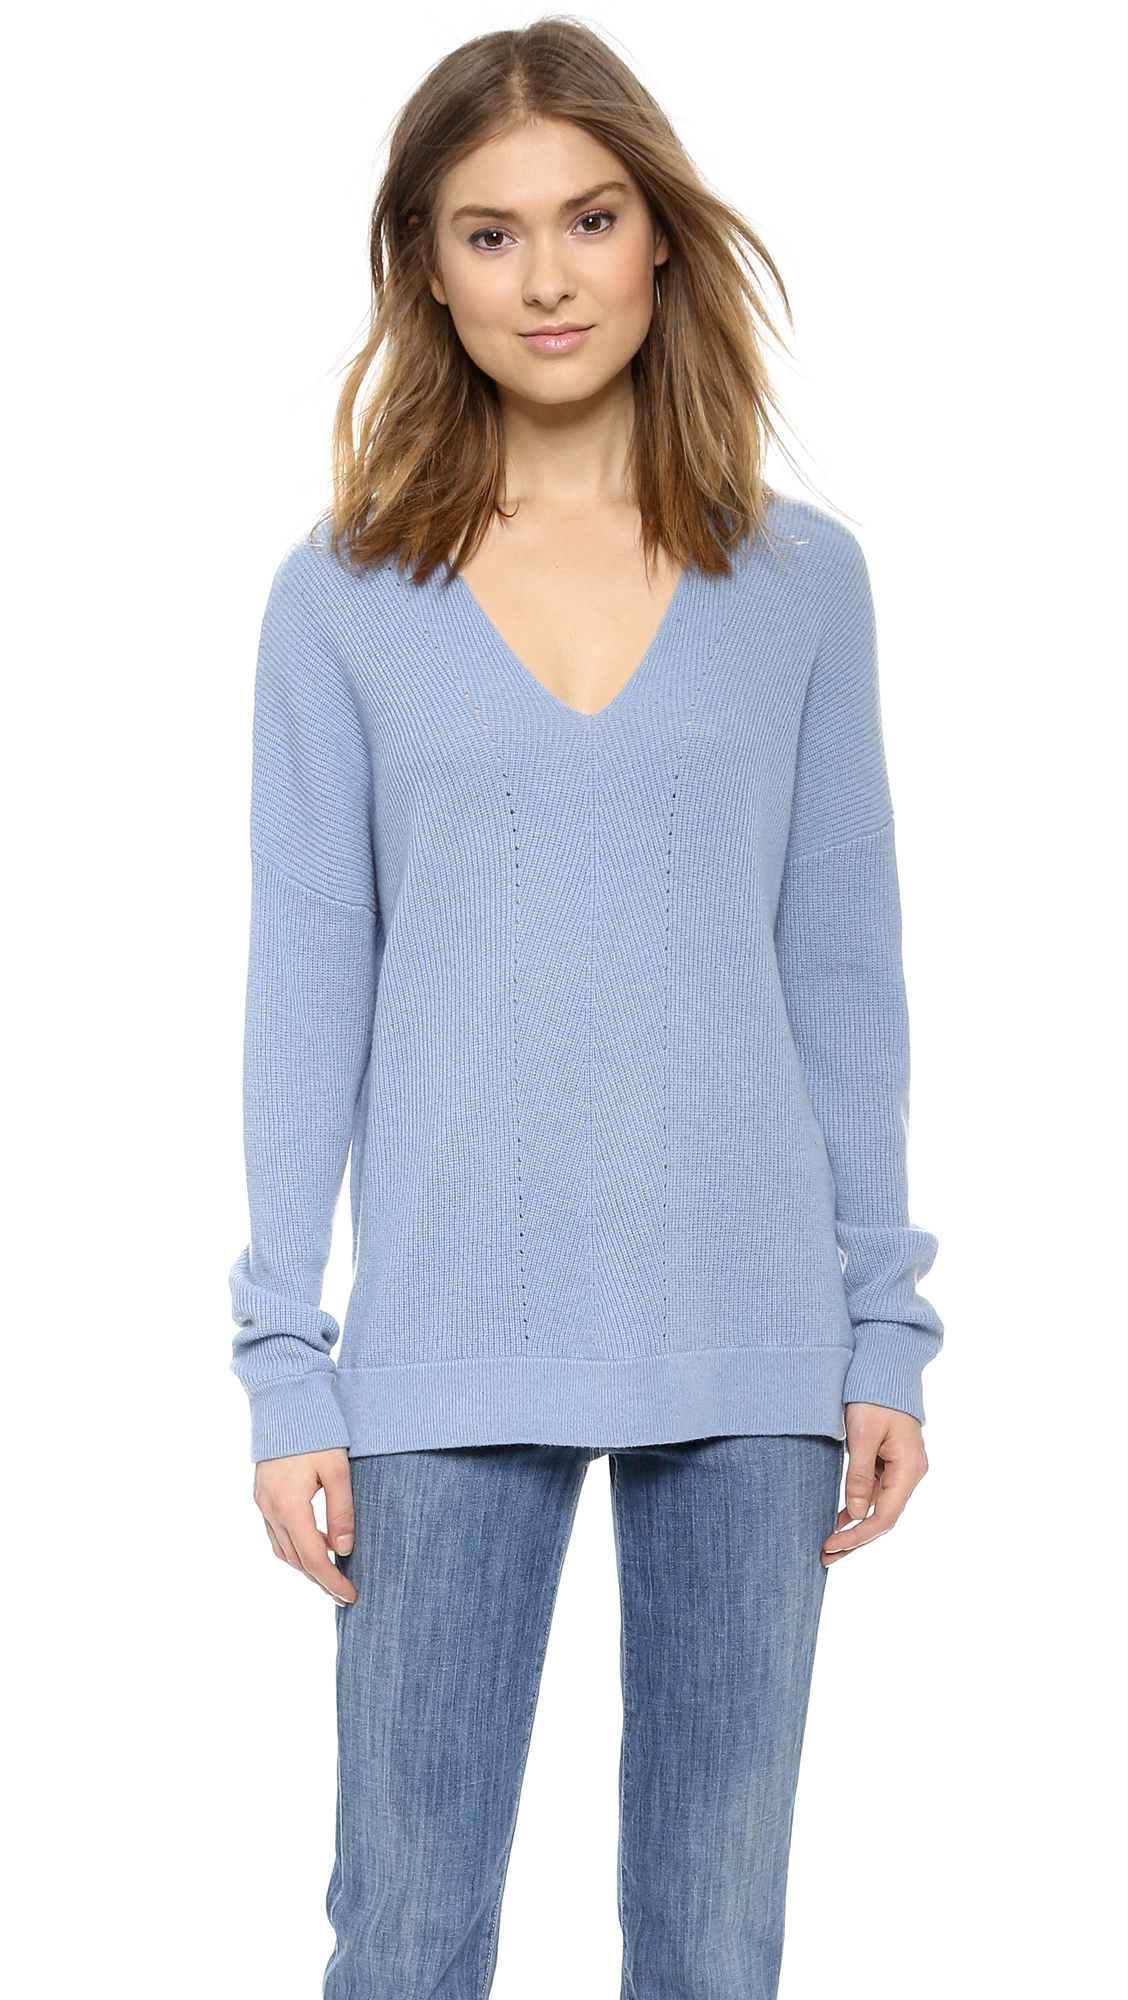 Vince Vee Layout Cashmere Sweater - Slate Blue in Blue | Lyst